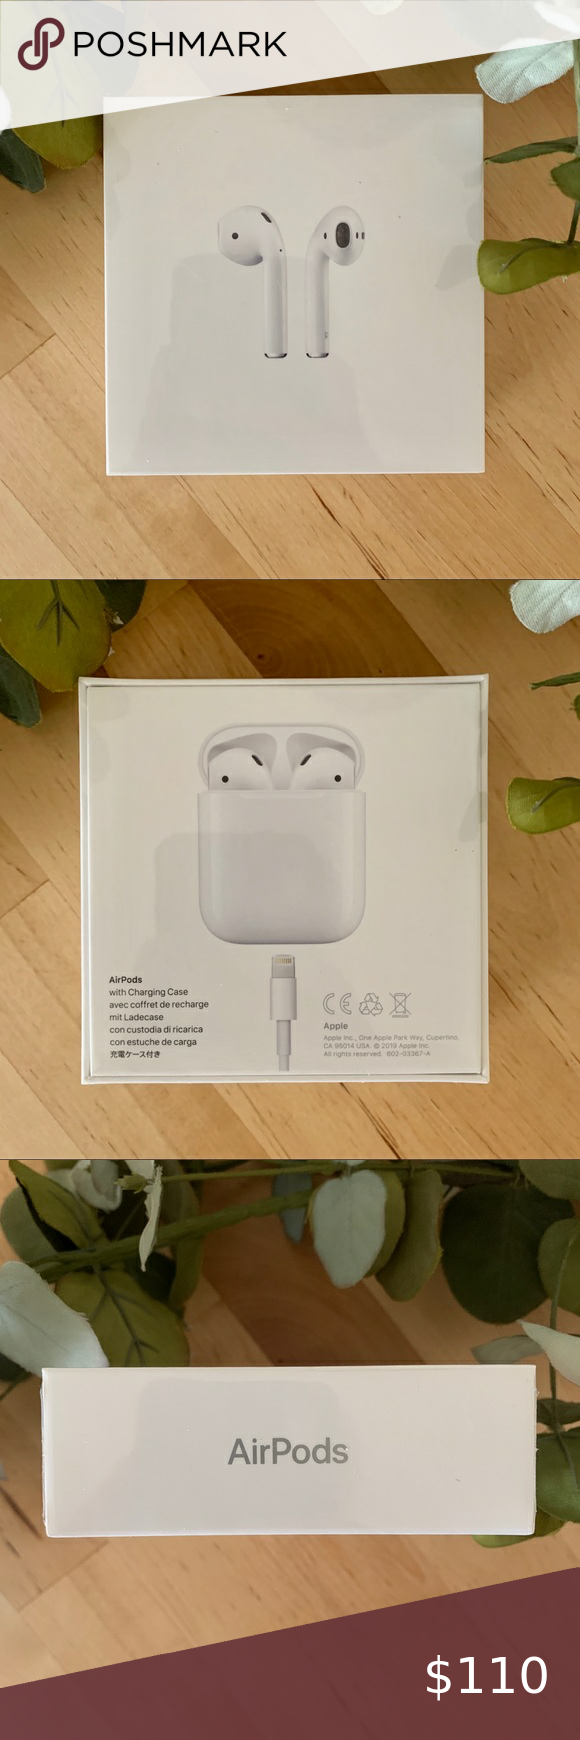 airpods 2nd generation packaging